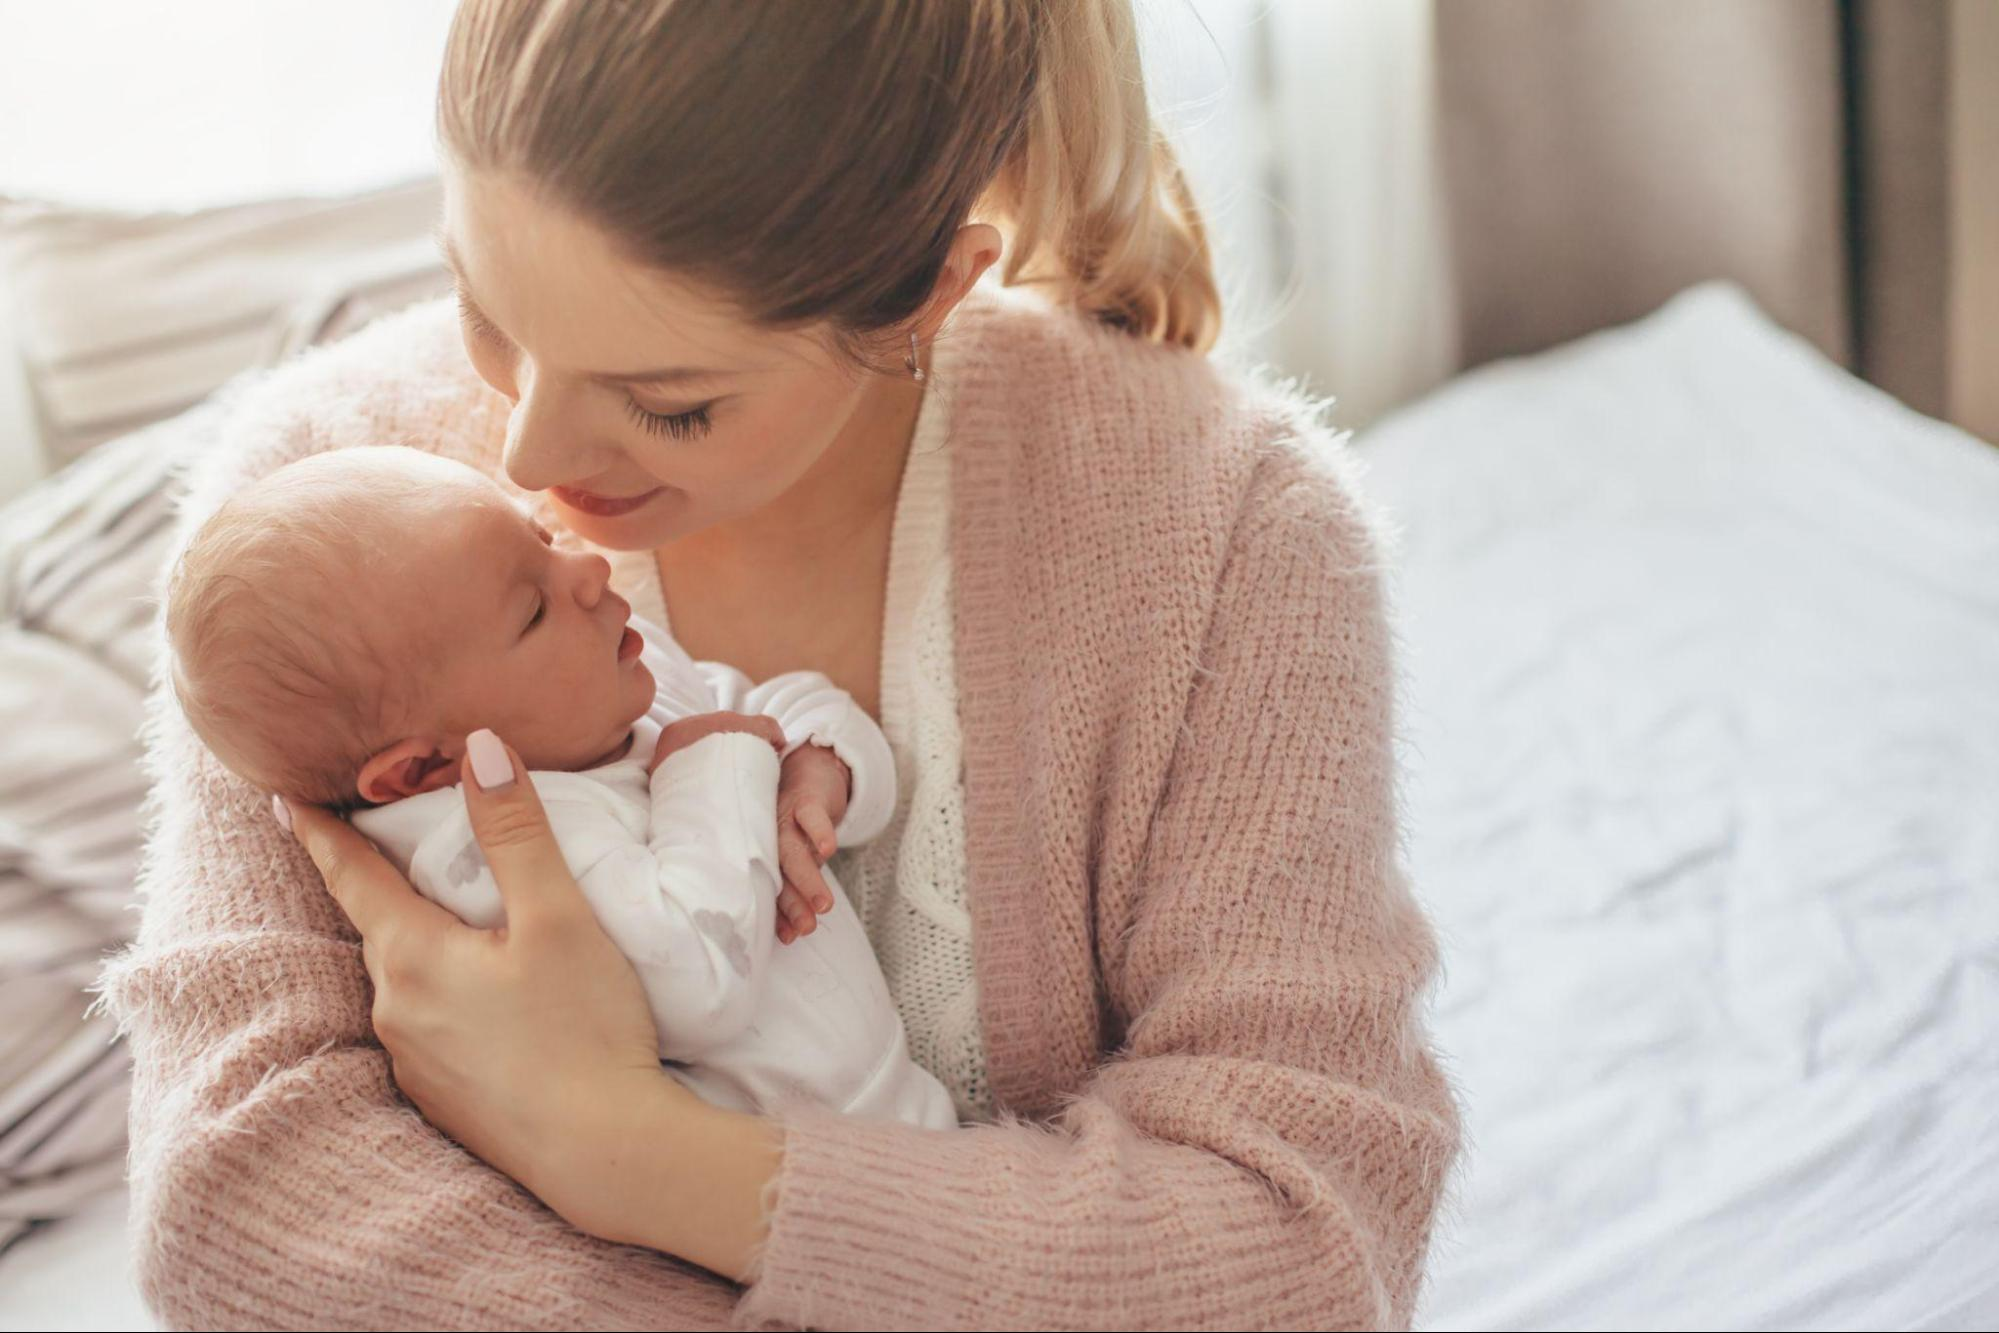 5 tips on how to keep your newborn healthy